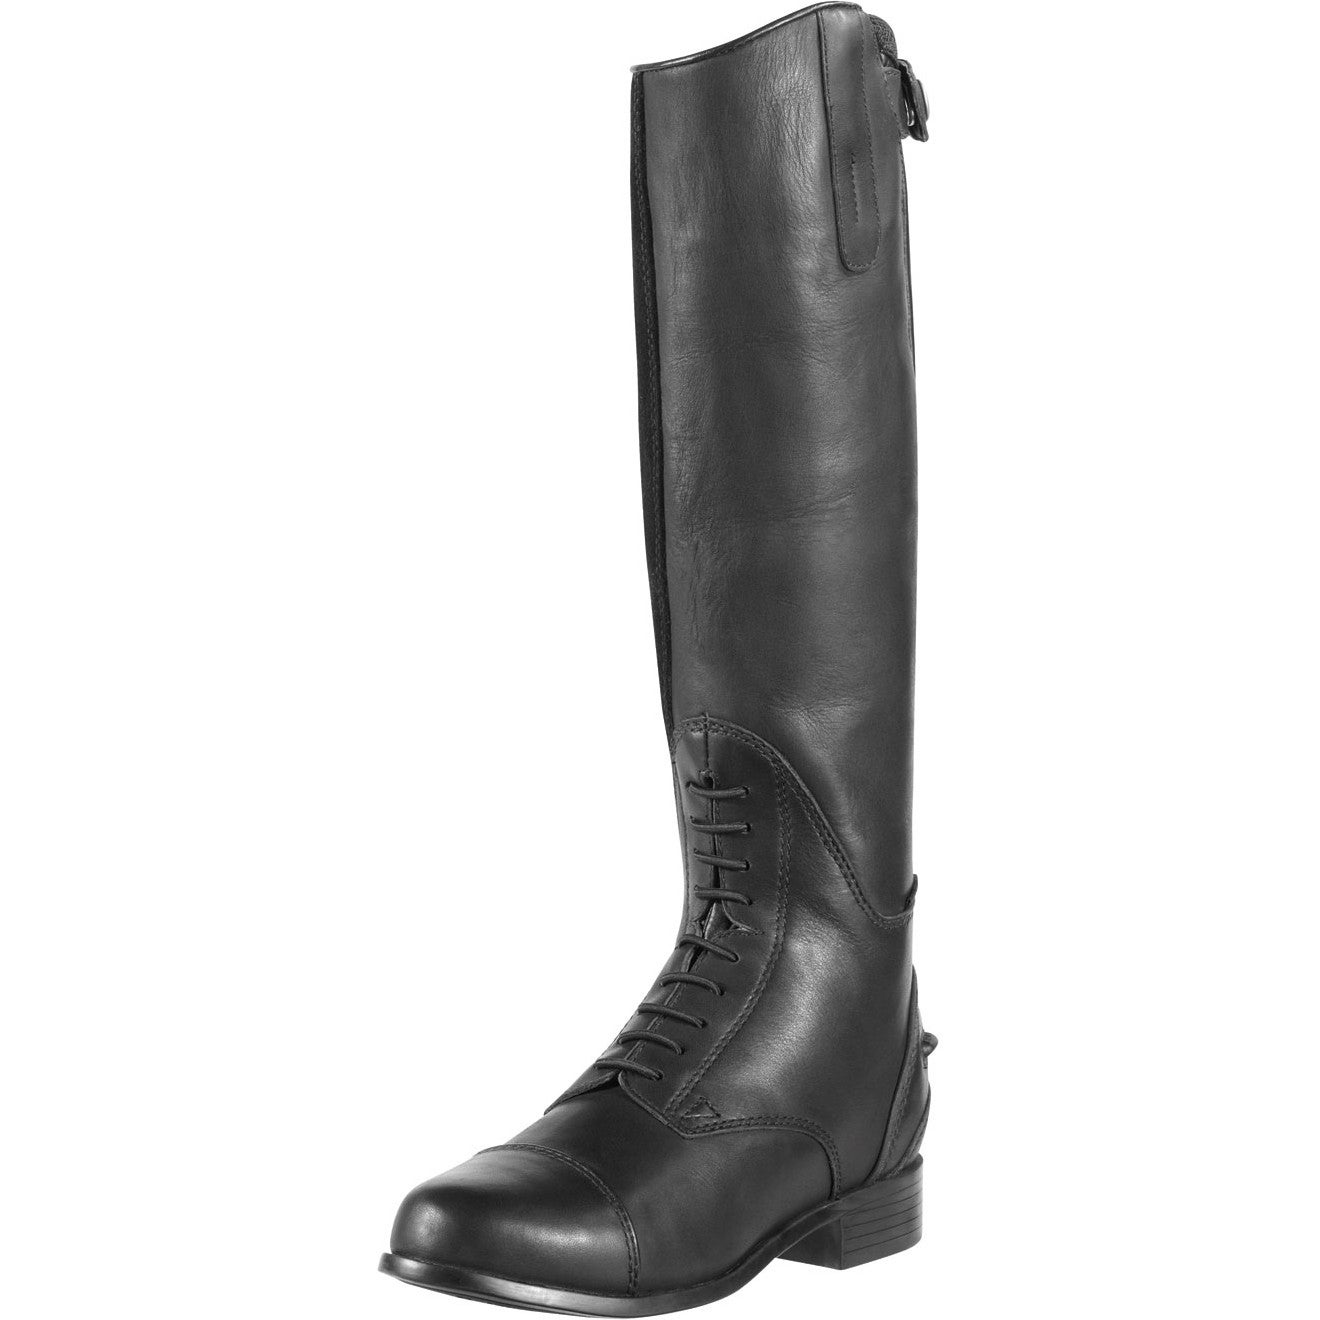 Ariat Bromont Pro Zip H2O Insulated